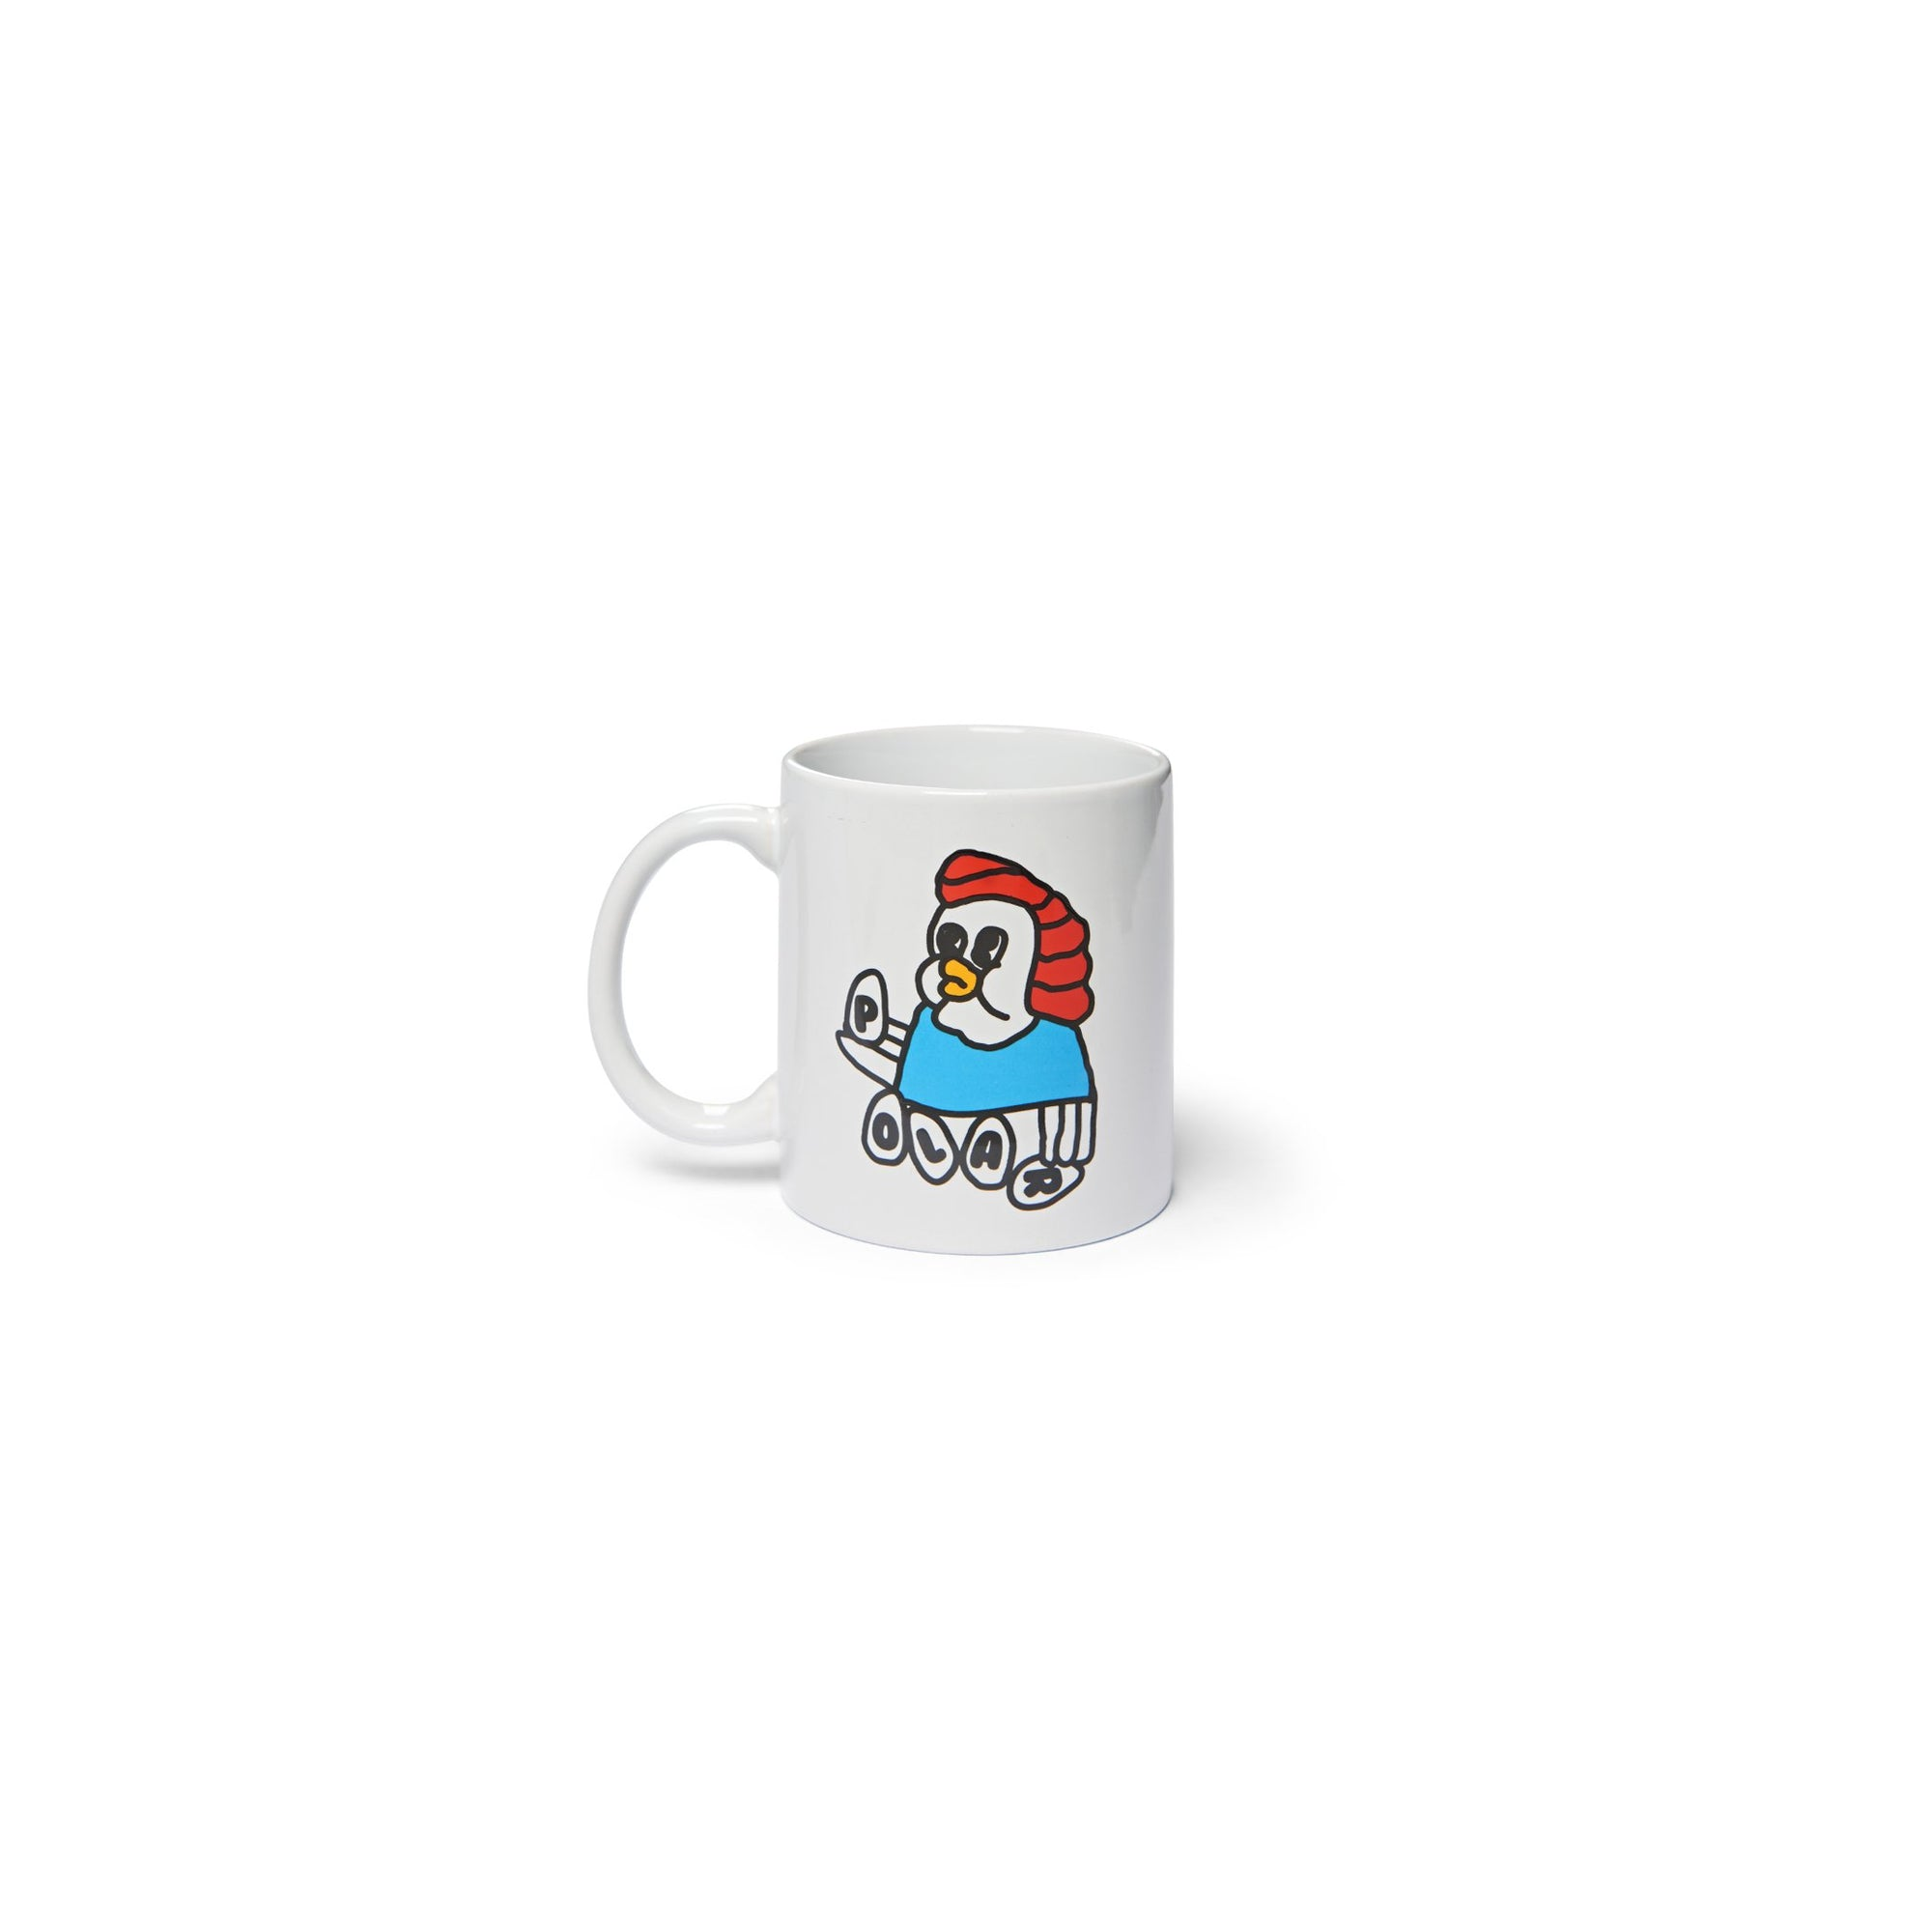 Polar Mug Product Photo #1